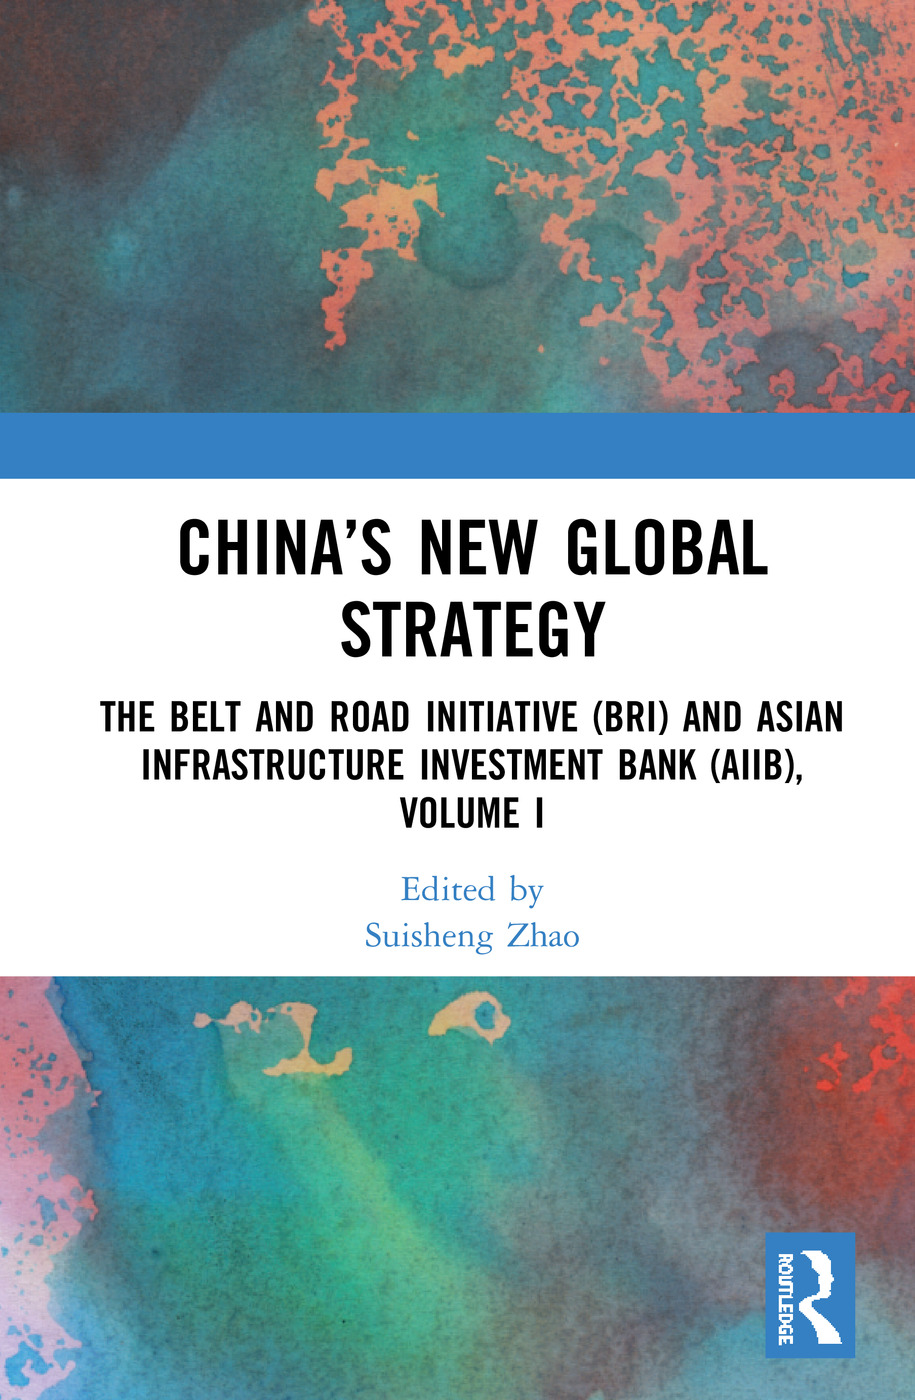 China's New Global Strategy: The Belt and Road Initiative (BRI) and Asian Infrastructure Investment Bank (AIIB), Volume I book cover